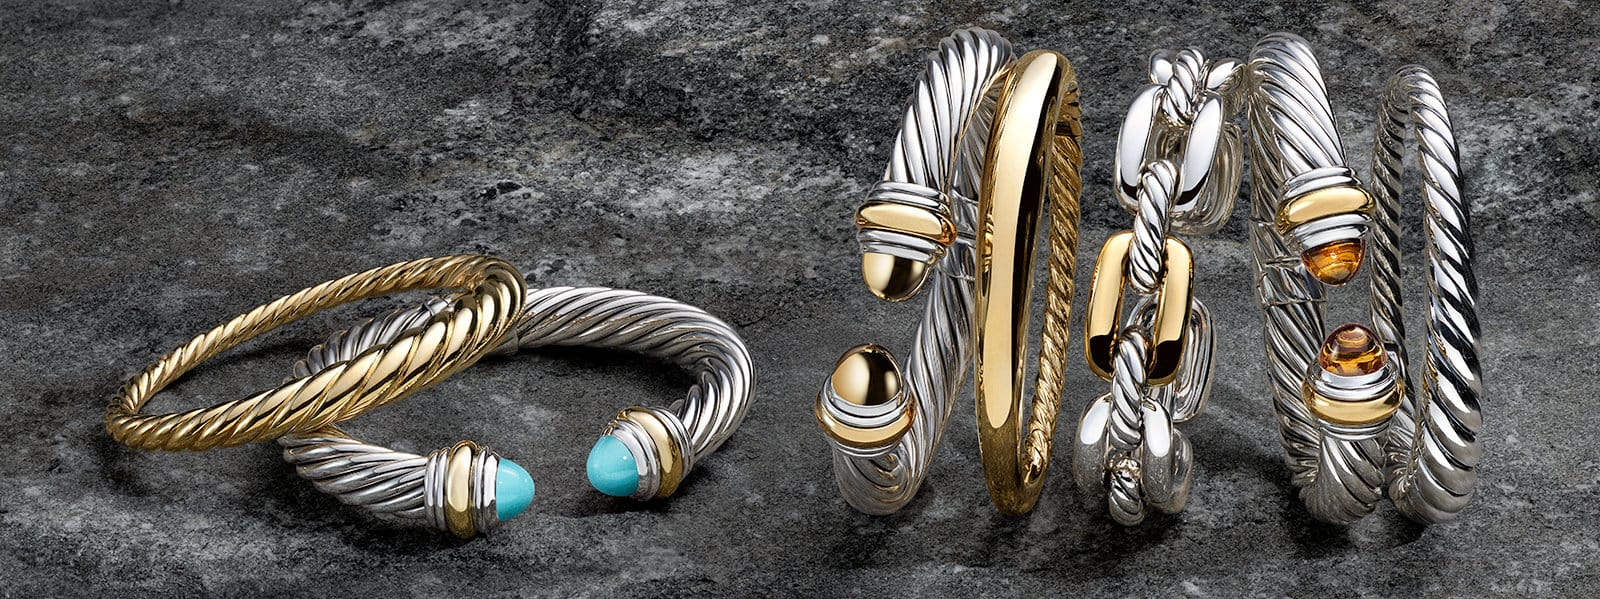 The Cable Collection®, Pure Form® and Wellesley Link™ bracelets in sterling silver with 14K or 18K yellow gold with tiger's eye or turquoise, and in 18K yellow gold or sterling silver on a stone.